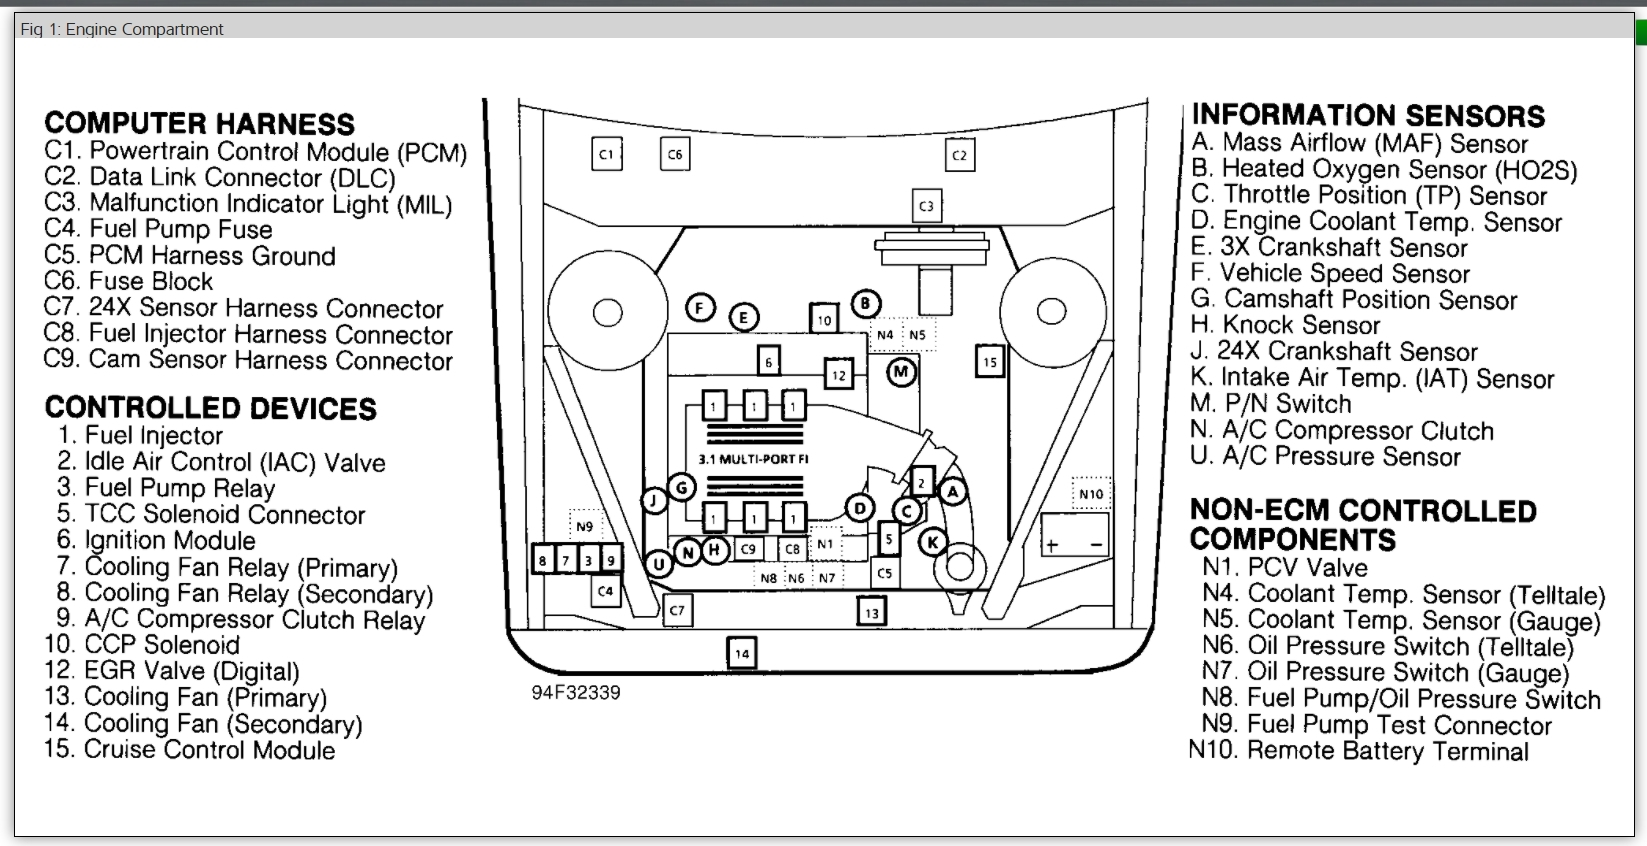 OH_7612] 2000 Buick Lesabre 3800 V6 Engine Diagram Best Collection  Electrical Wiring DiagramDenli Ntnes Xeira Mohammedshrine Librar Wiring 101